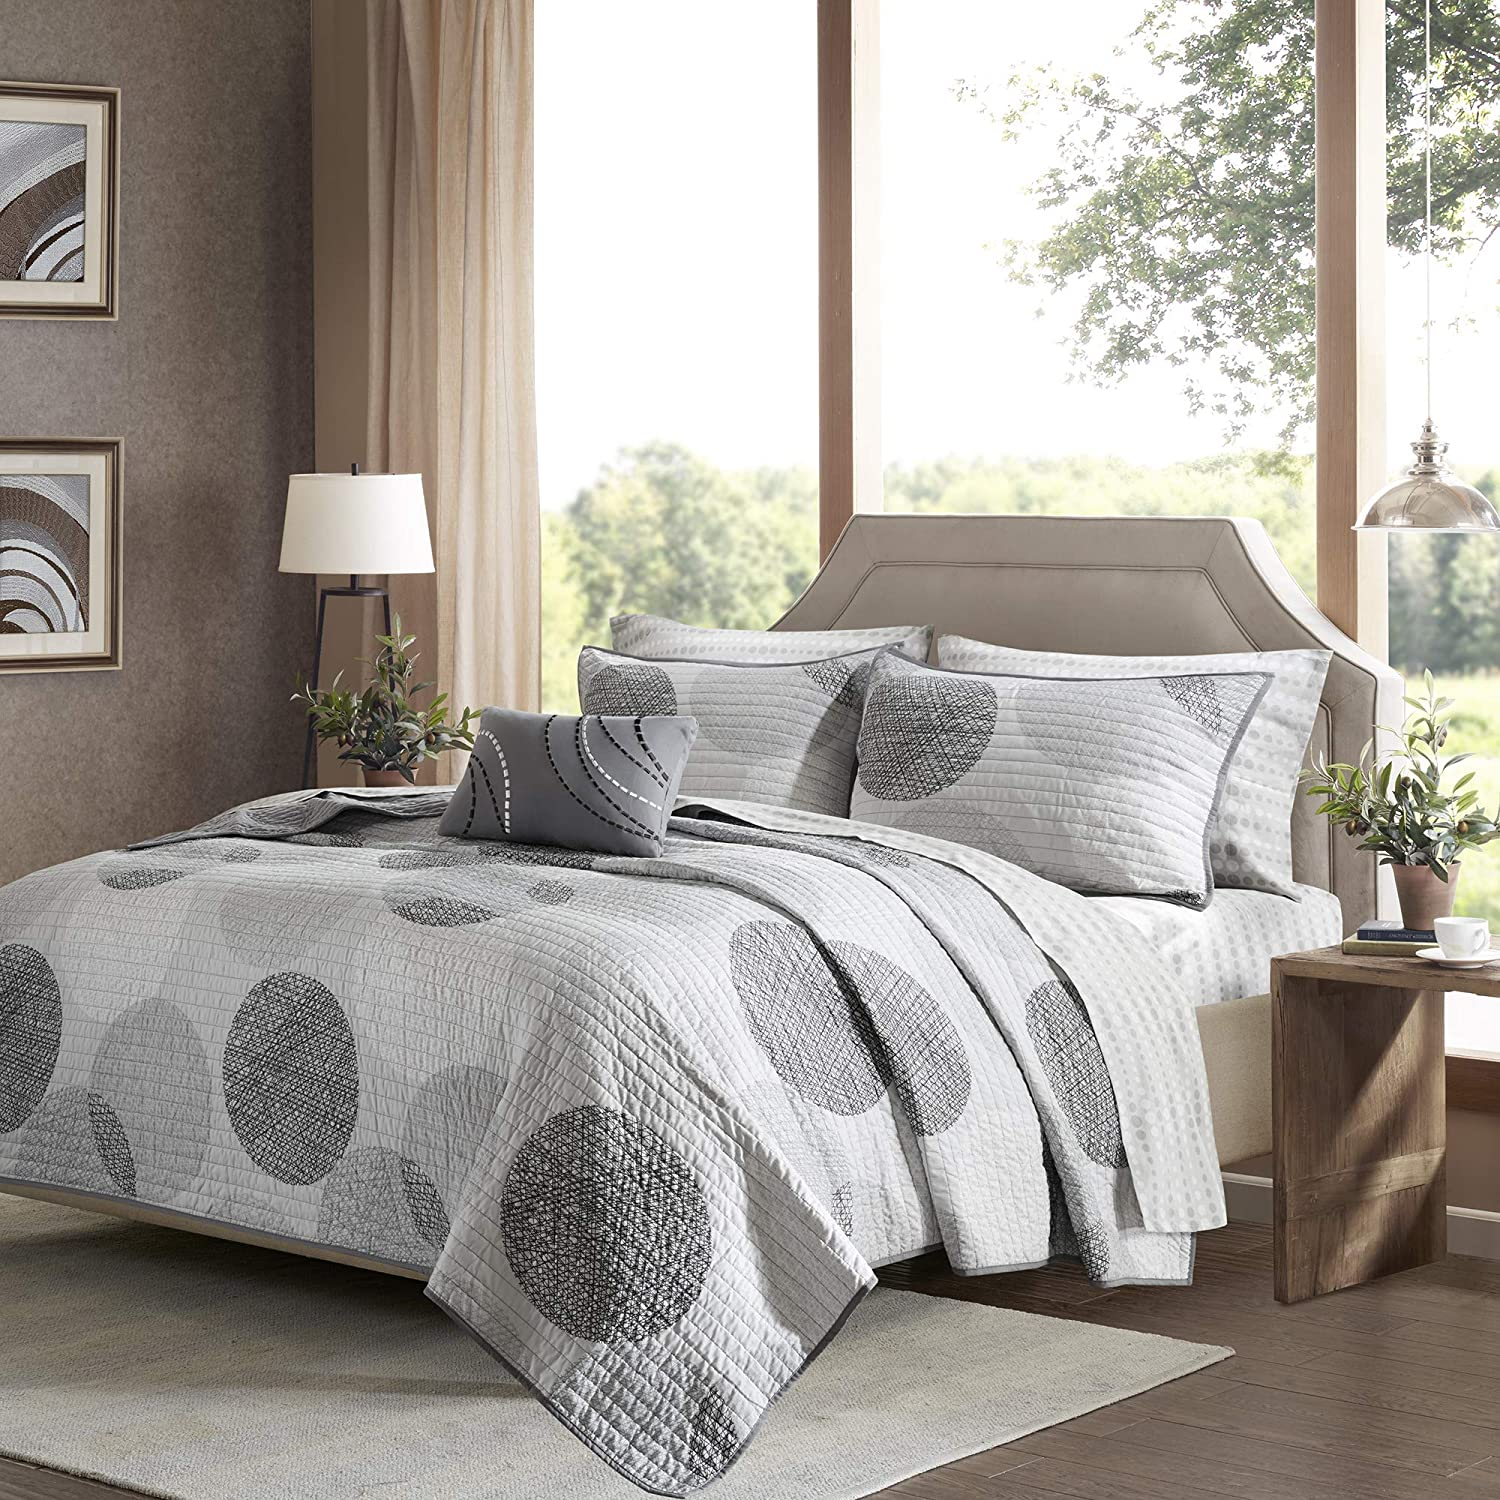 8 Piece Bedding Quilt Coverlets Geometric Dots Ultra Soft Microfiber with Cotton Sheets Bed Quilts Quilted Coverlet Grey Madison Park Essentials Knowles Full Size Quilt Bedding Set